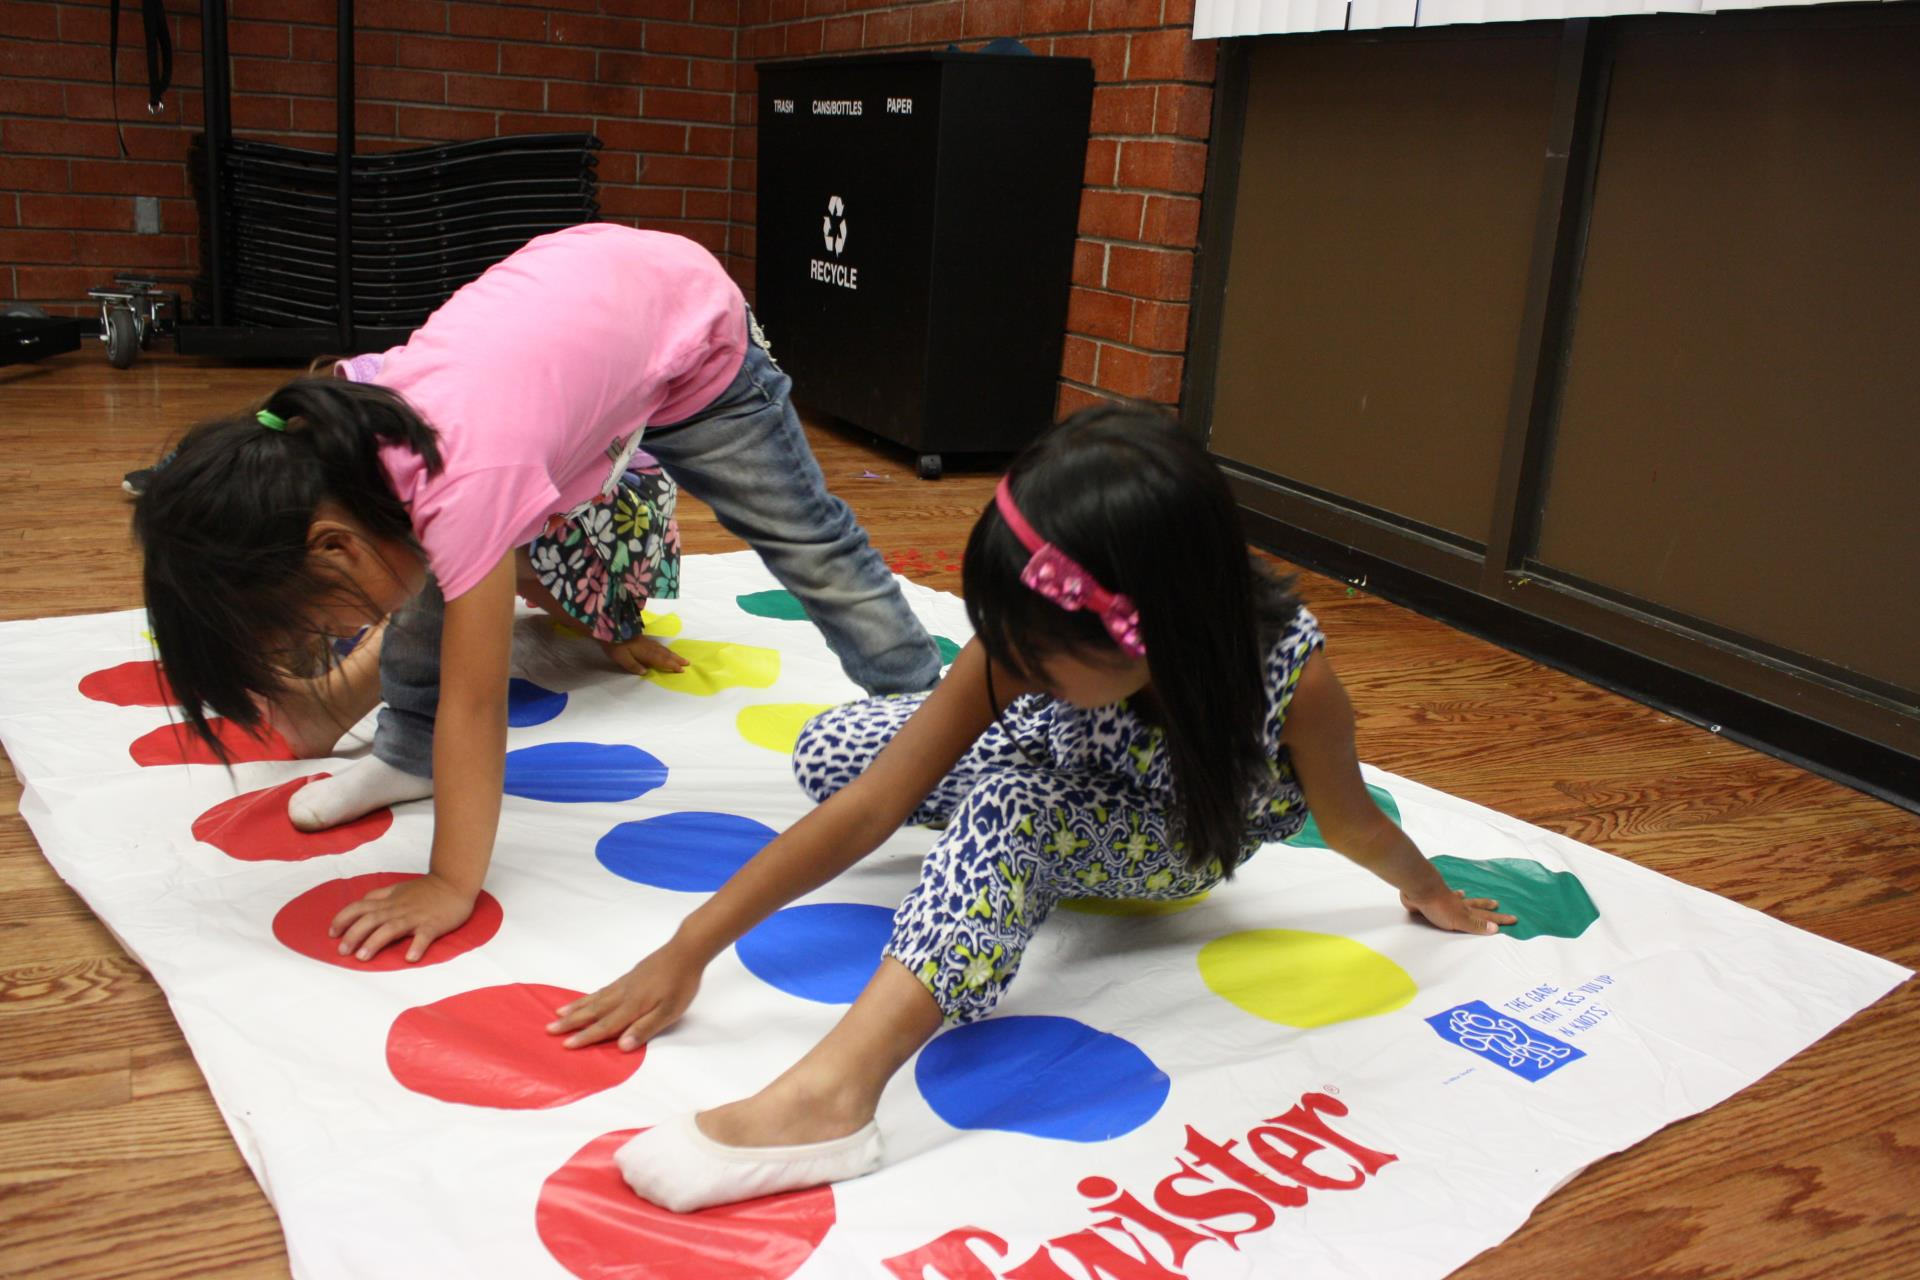 Youth participate in Twister.